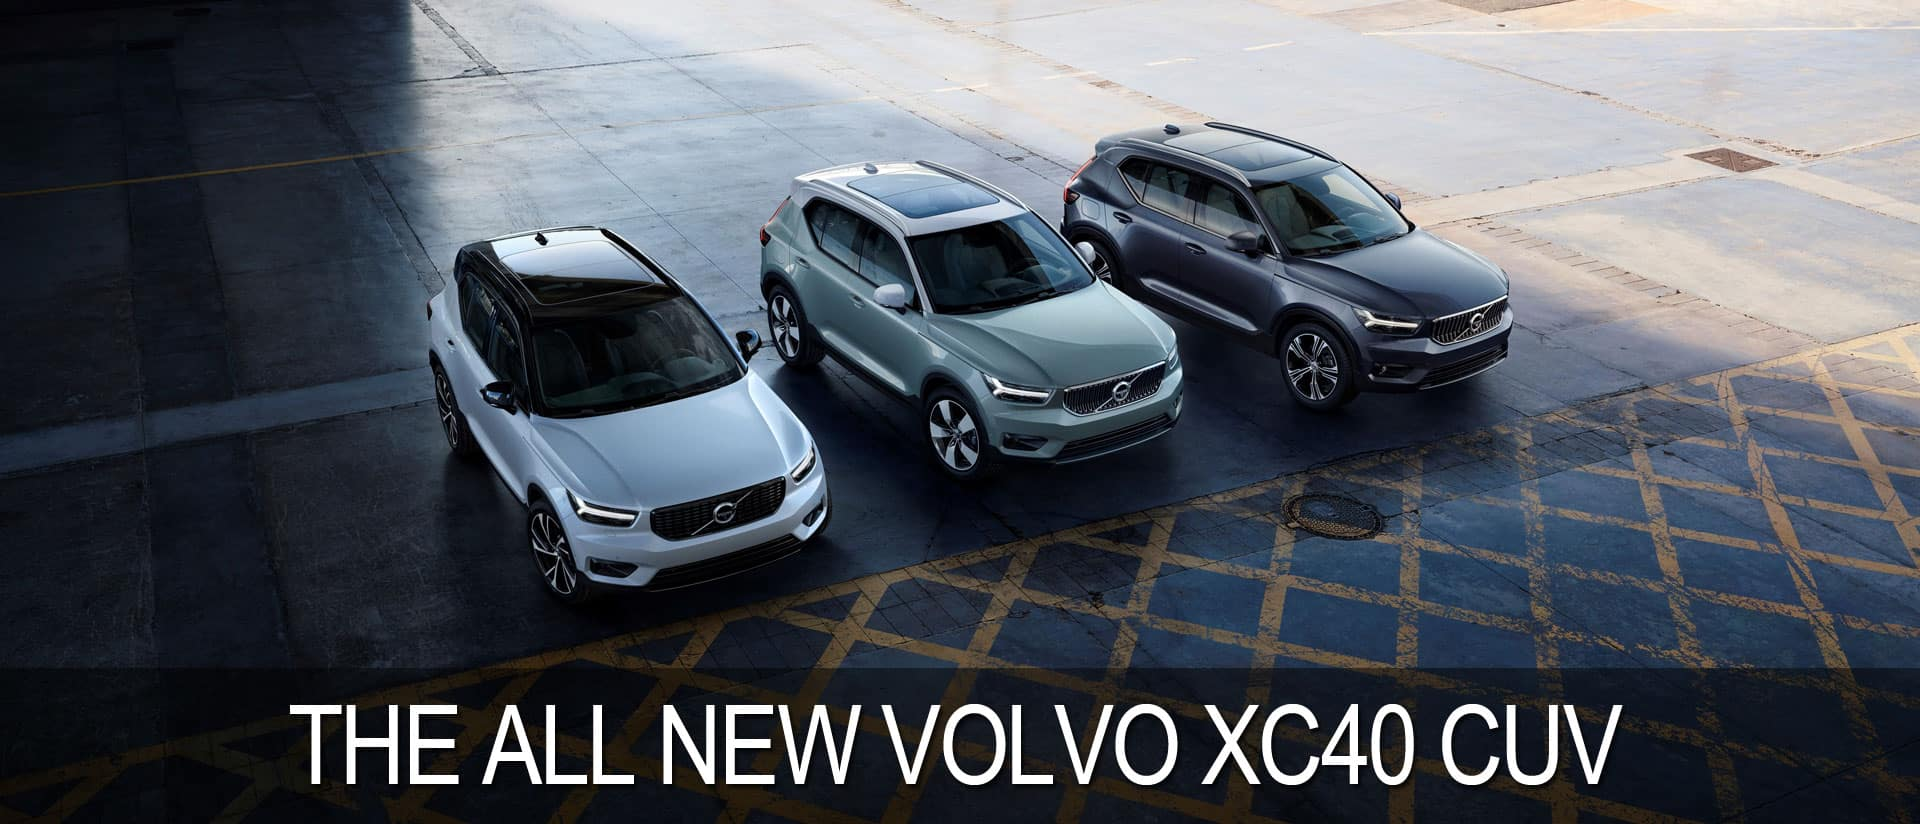 st-laurent-volvo-xc40